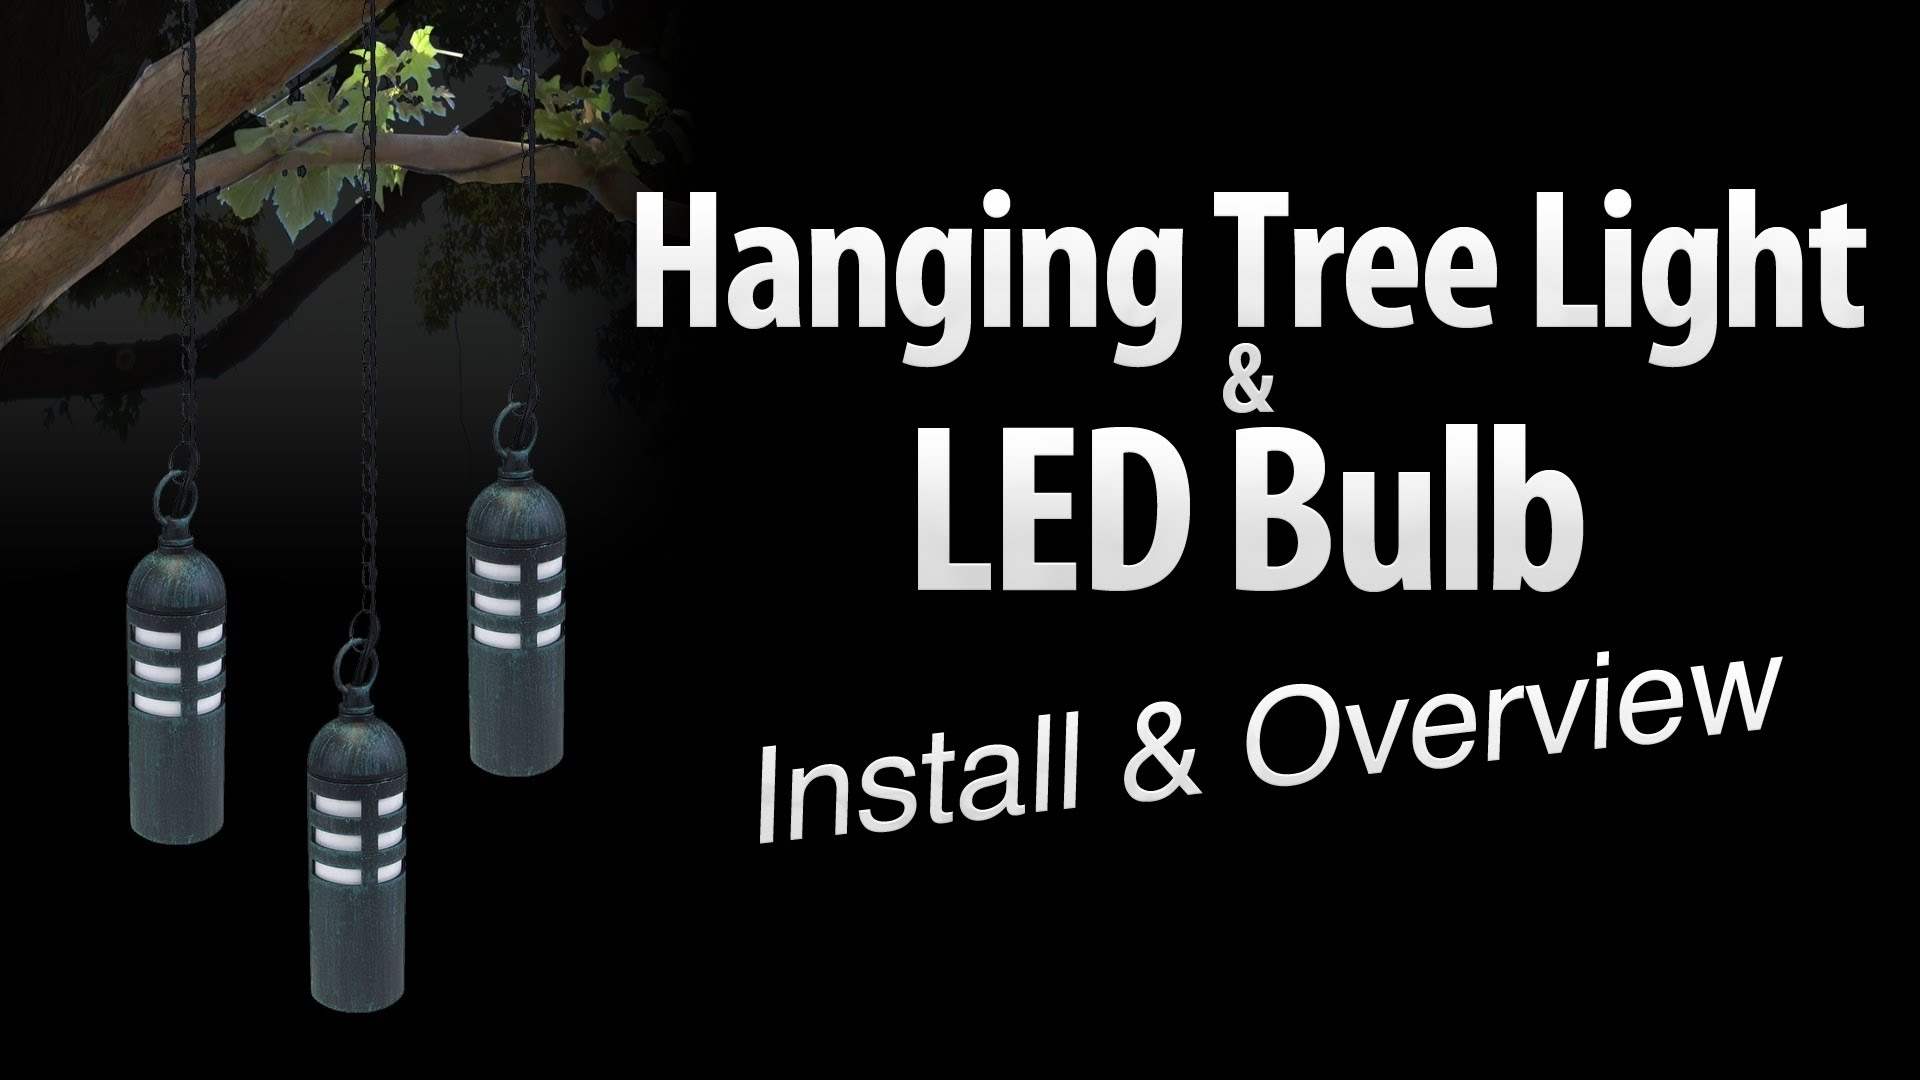 Hanging Tree Light & Led Light Bulb Install & Overviewtotal With Regard To Hanging Lights On An Outdoor Tree (#12 of 15)